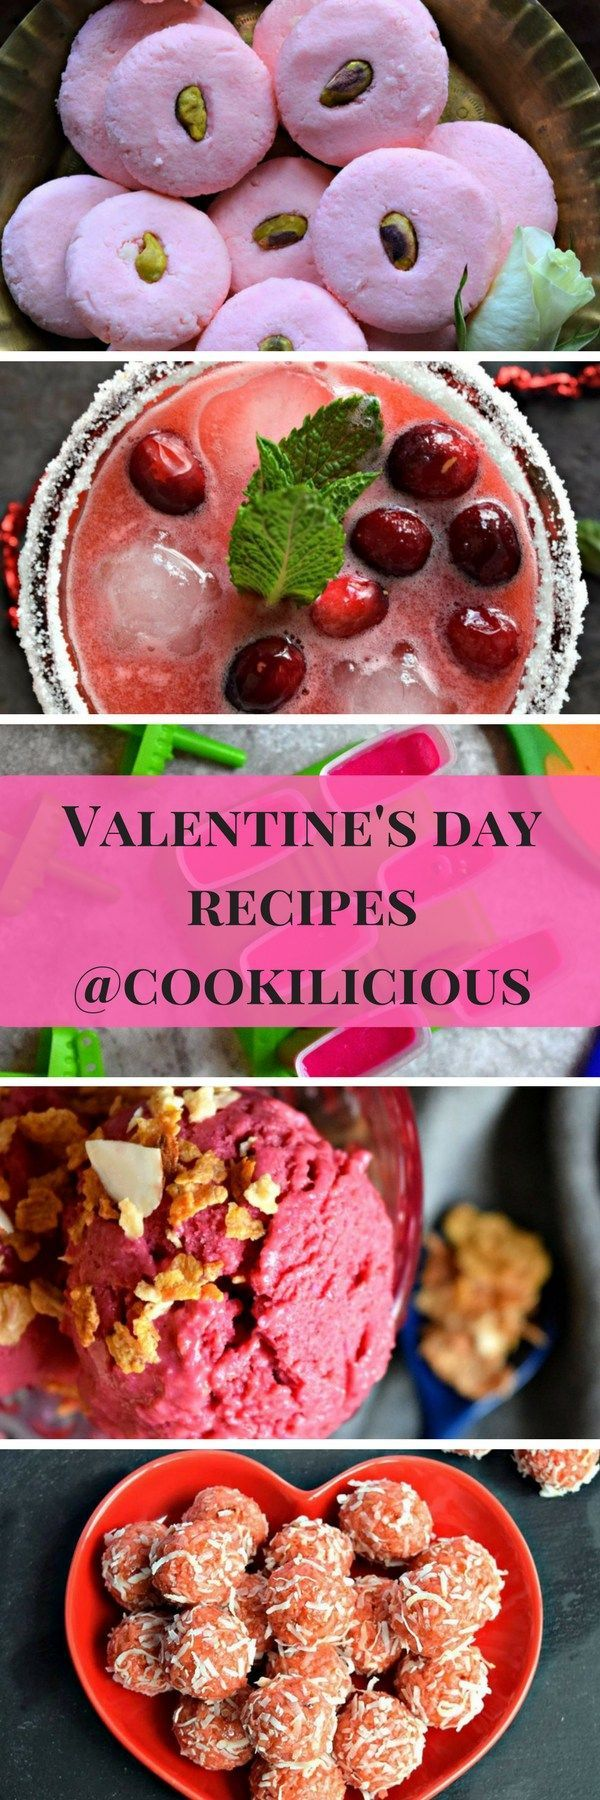 A collection of appetizing desserts to make this Valentine's day for your loved ones from Cookilicious.